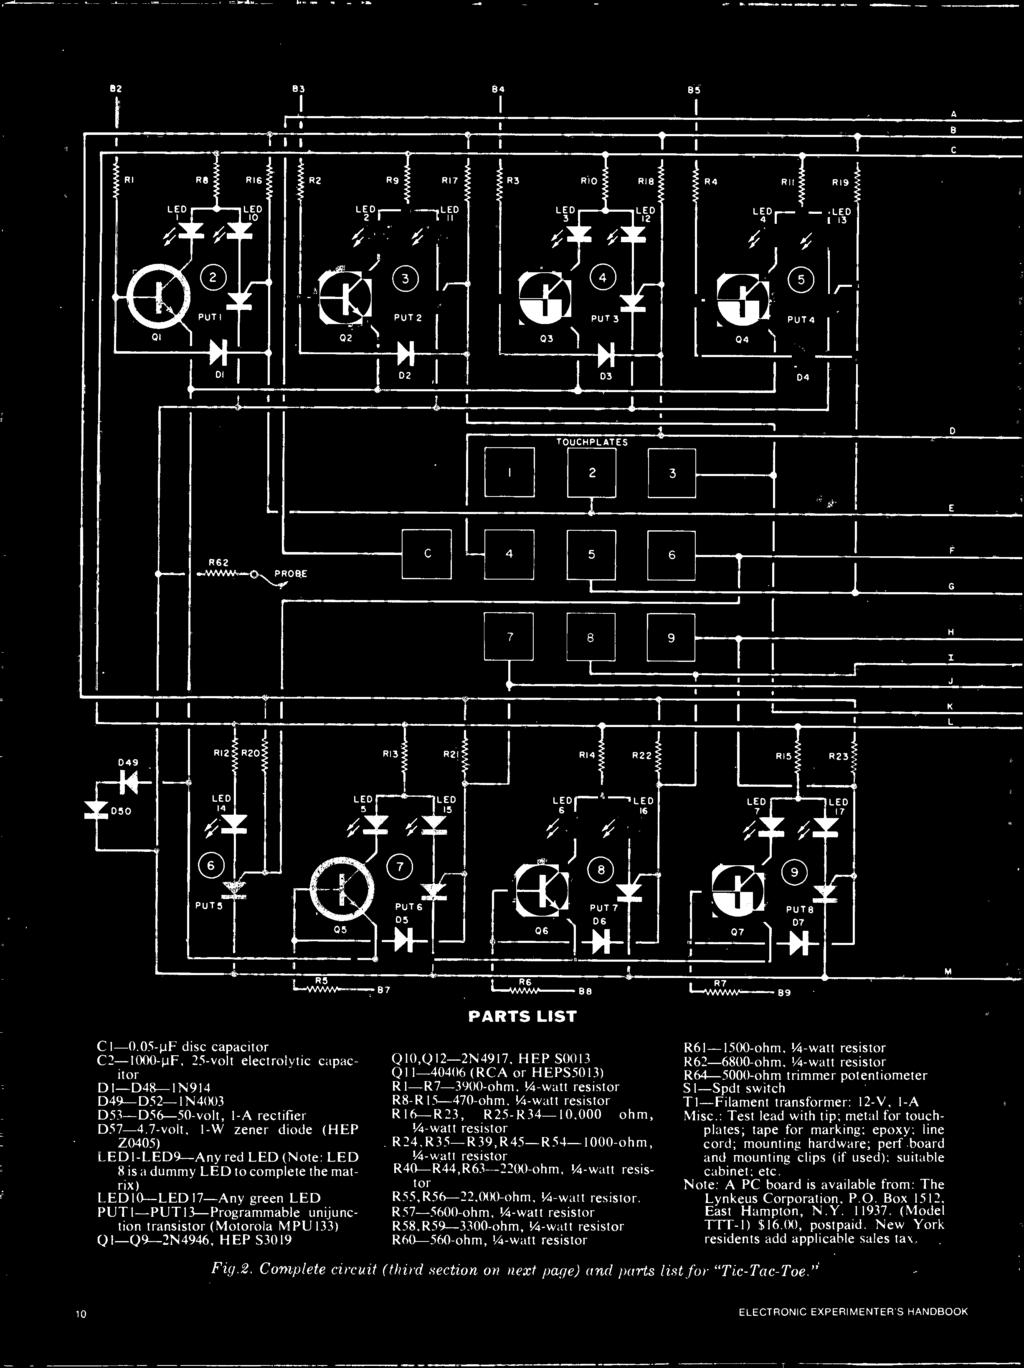 Handbdok Experimenters Electronic Light Activated Slave 800watt Softstart Triac Dimmer Circuit Diagram Tradeofic Mpu 133 Qi Q9 2n4946 Hep S3019 Qi0q12 2n4917